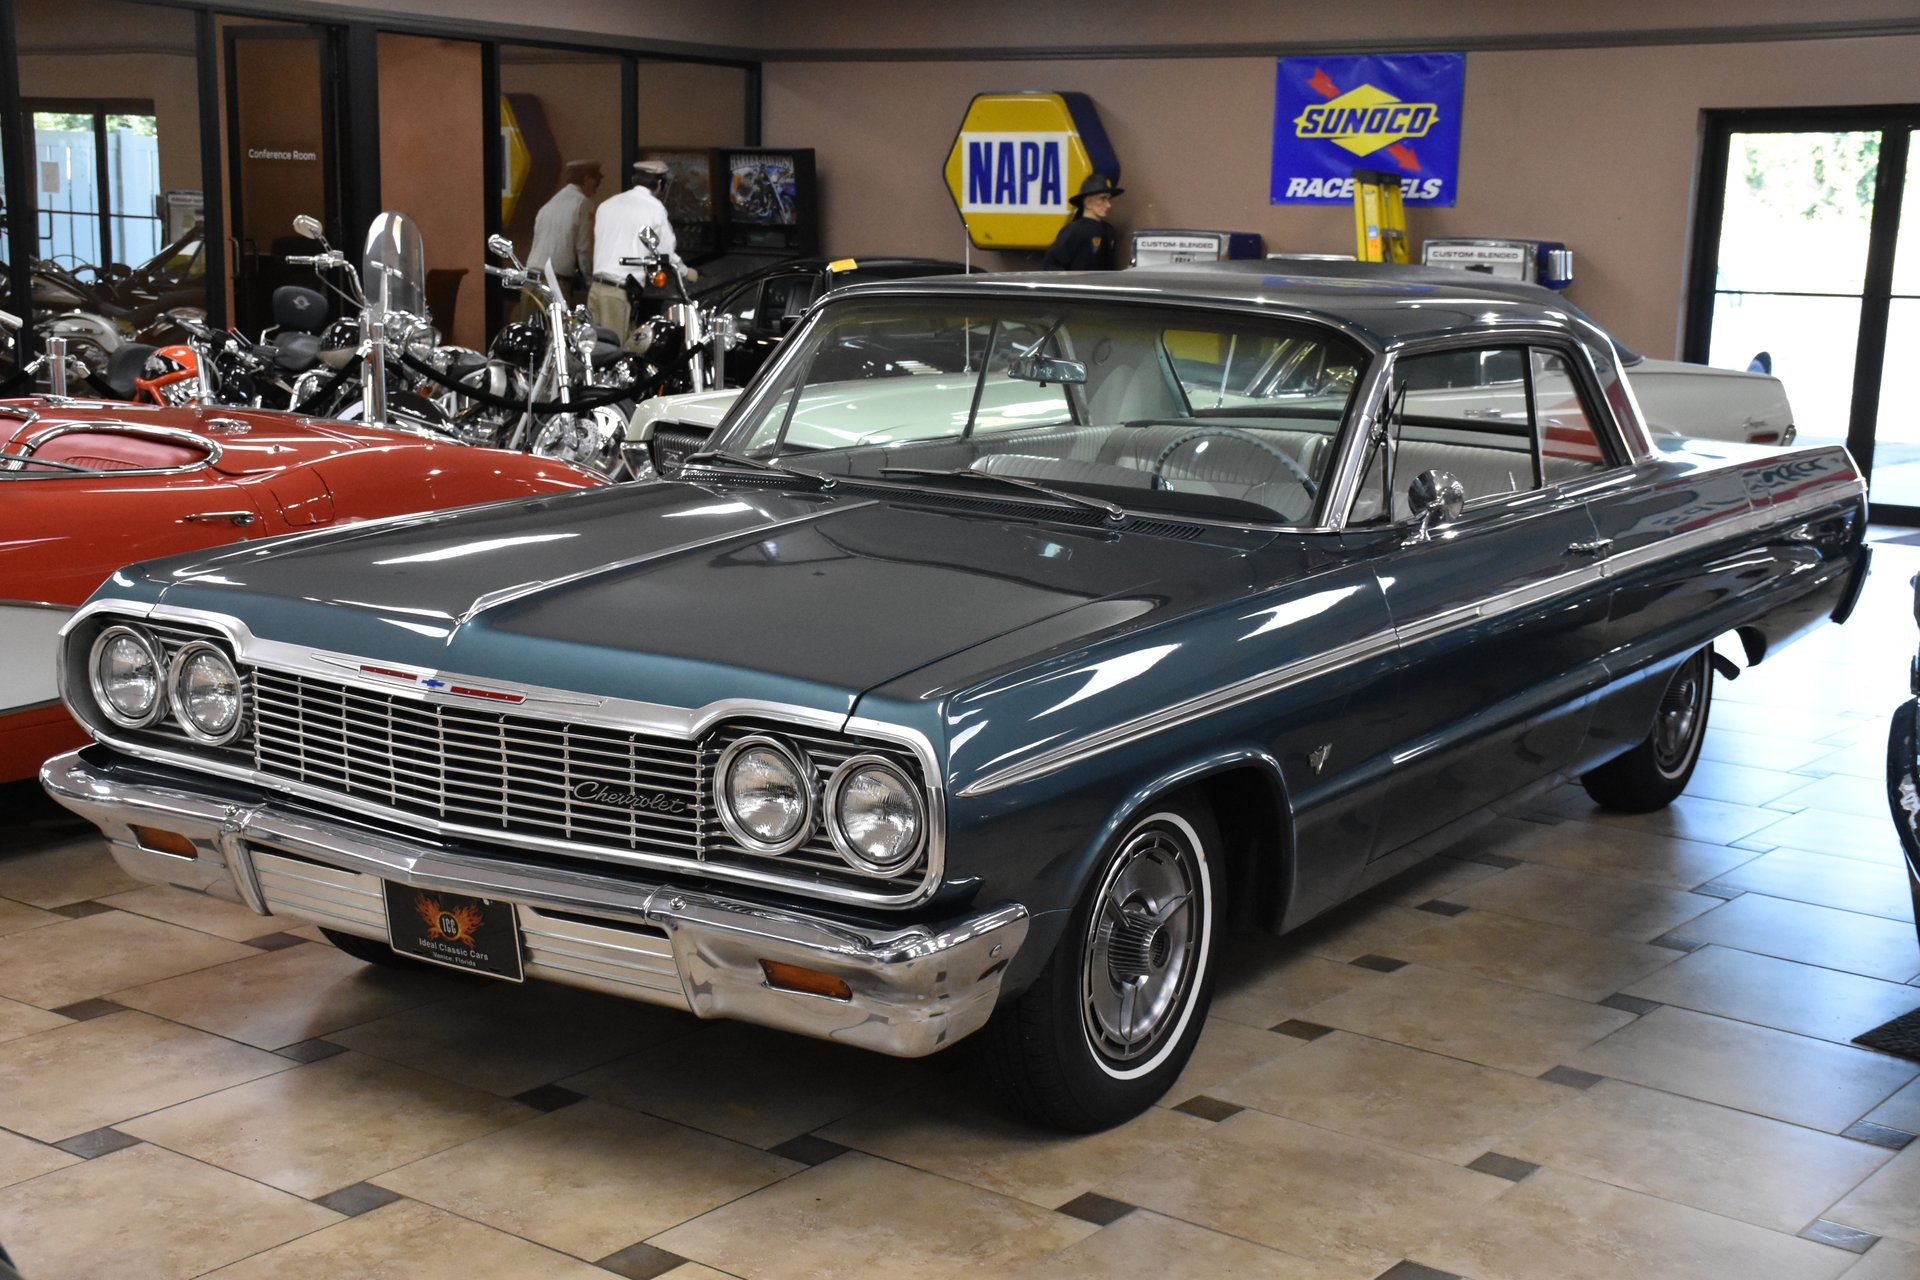 1964 Chevrolet Impala | Ideal Classic Cars LLC